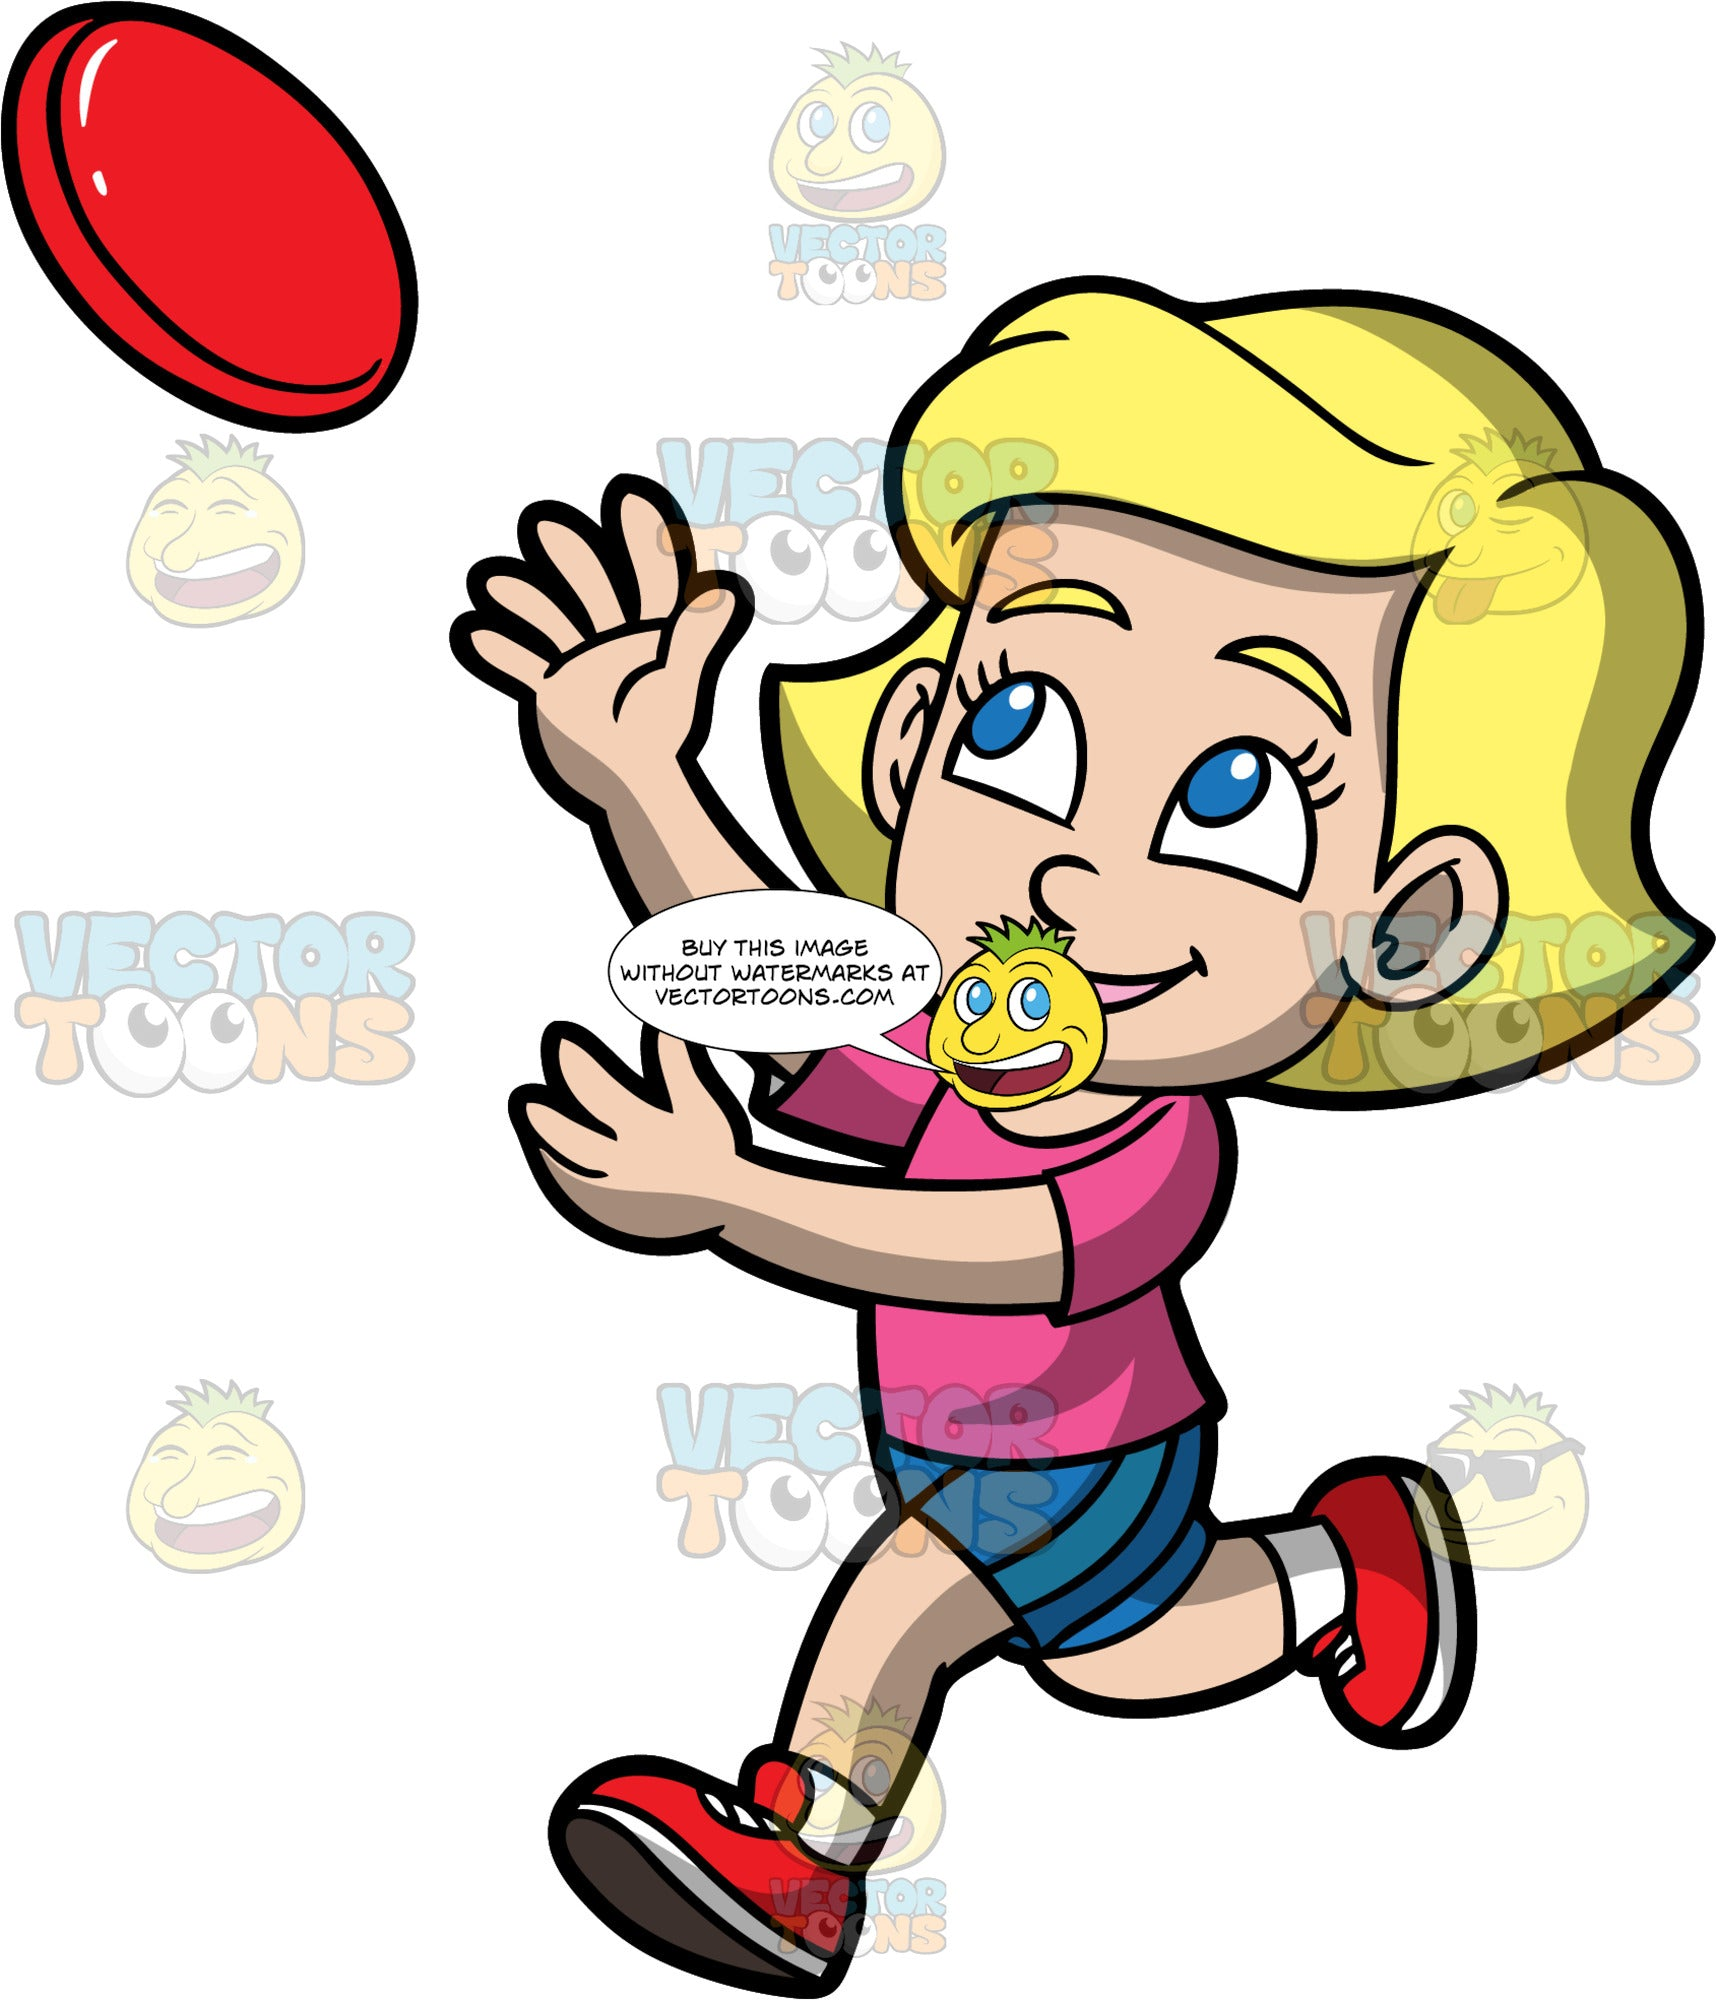 Mary Trying To Catch A Frisbee. A blonde girl wearing blue shorts, a pink shirt, and red shoes, running and reaching her arms up to catch a red frisbee